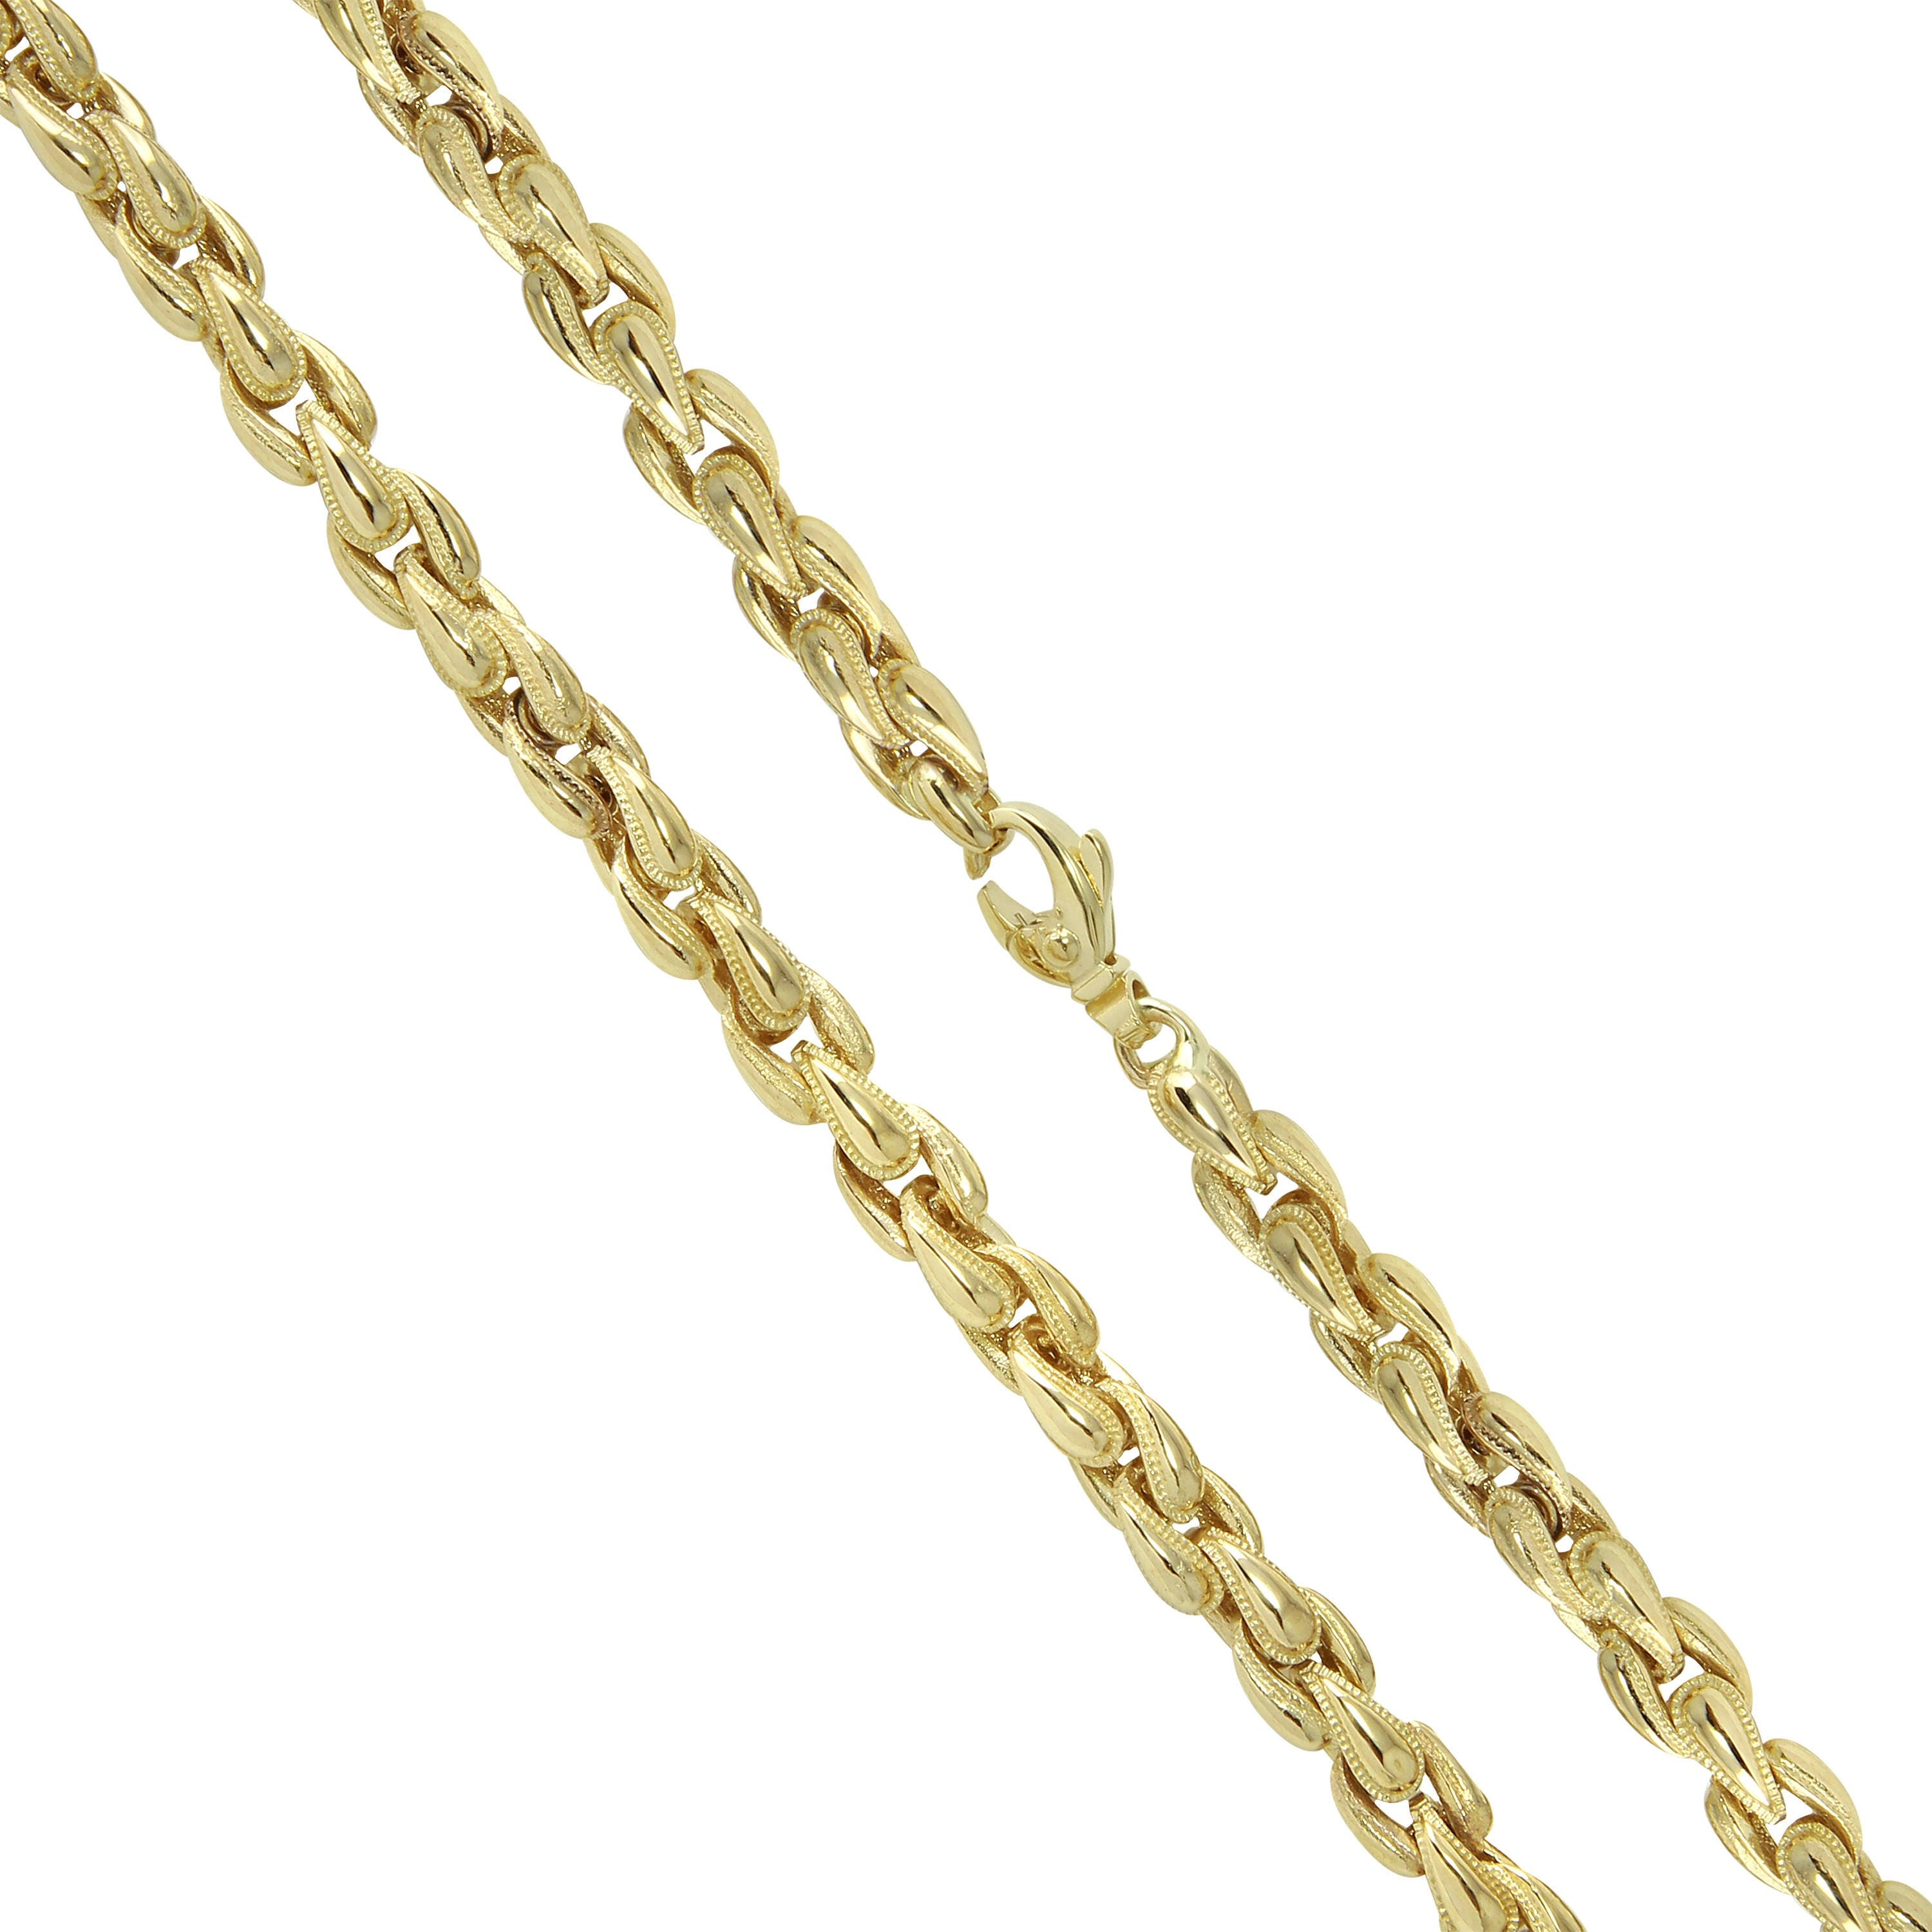 122gr 8mm 14K Yellow Gold Mn Solid GOLD Rope Chain